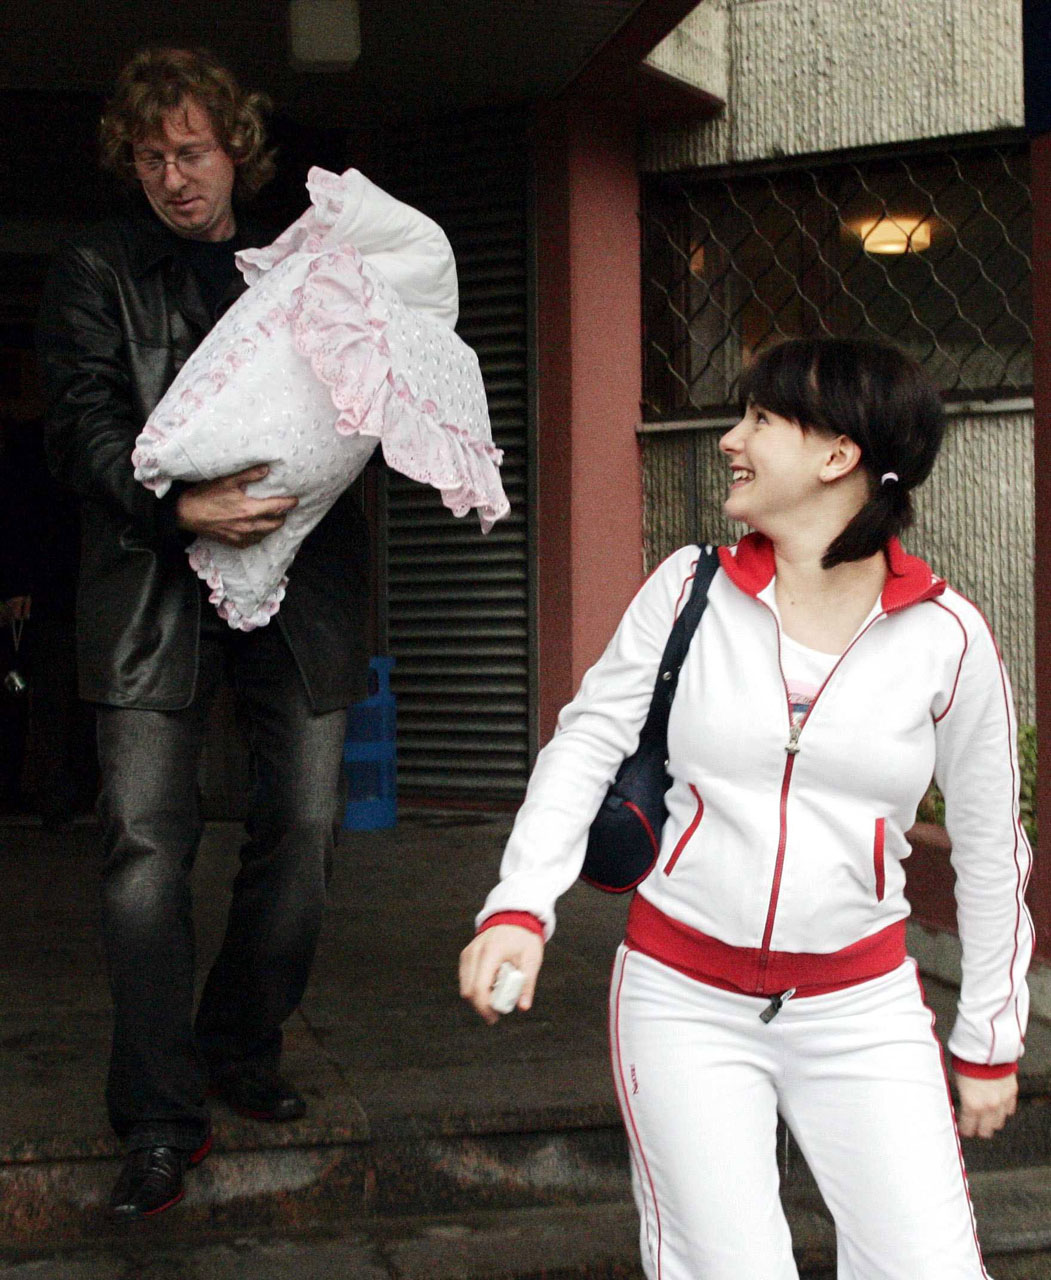 ТАТУ - Yulia Volkova After Giving Birth to a Daughter 27.09.2004